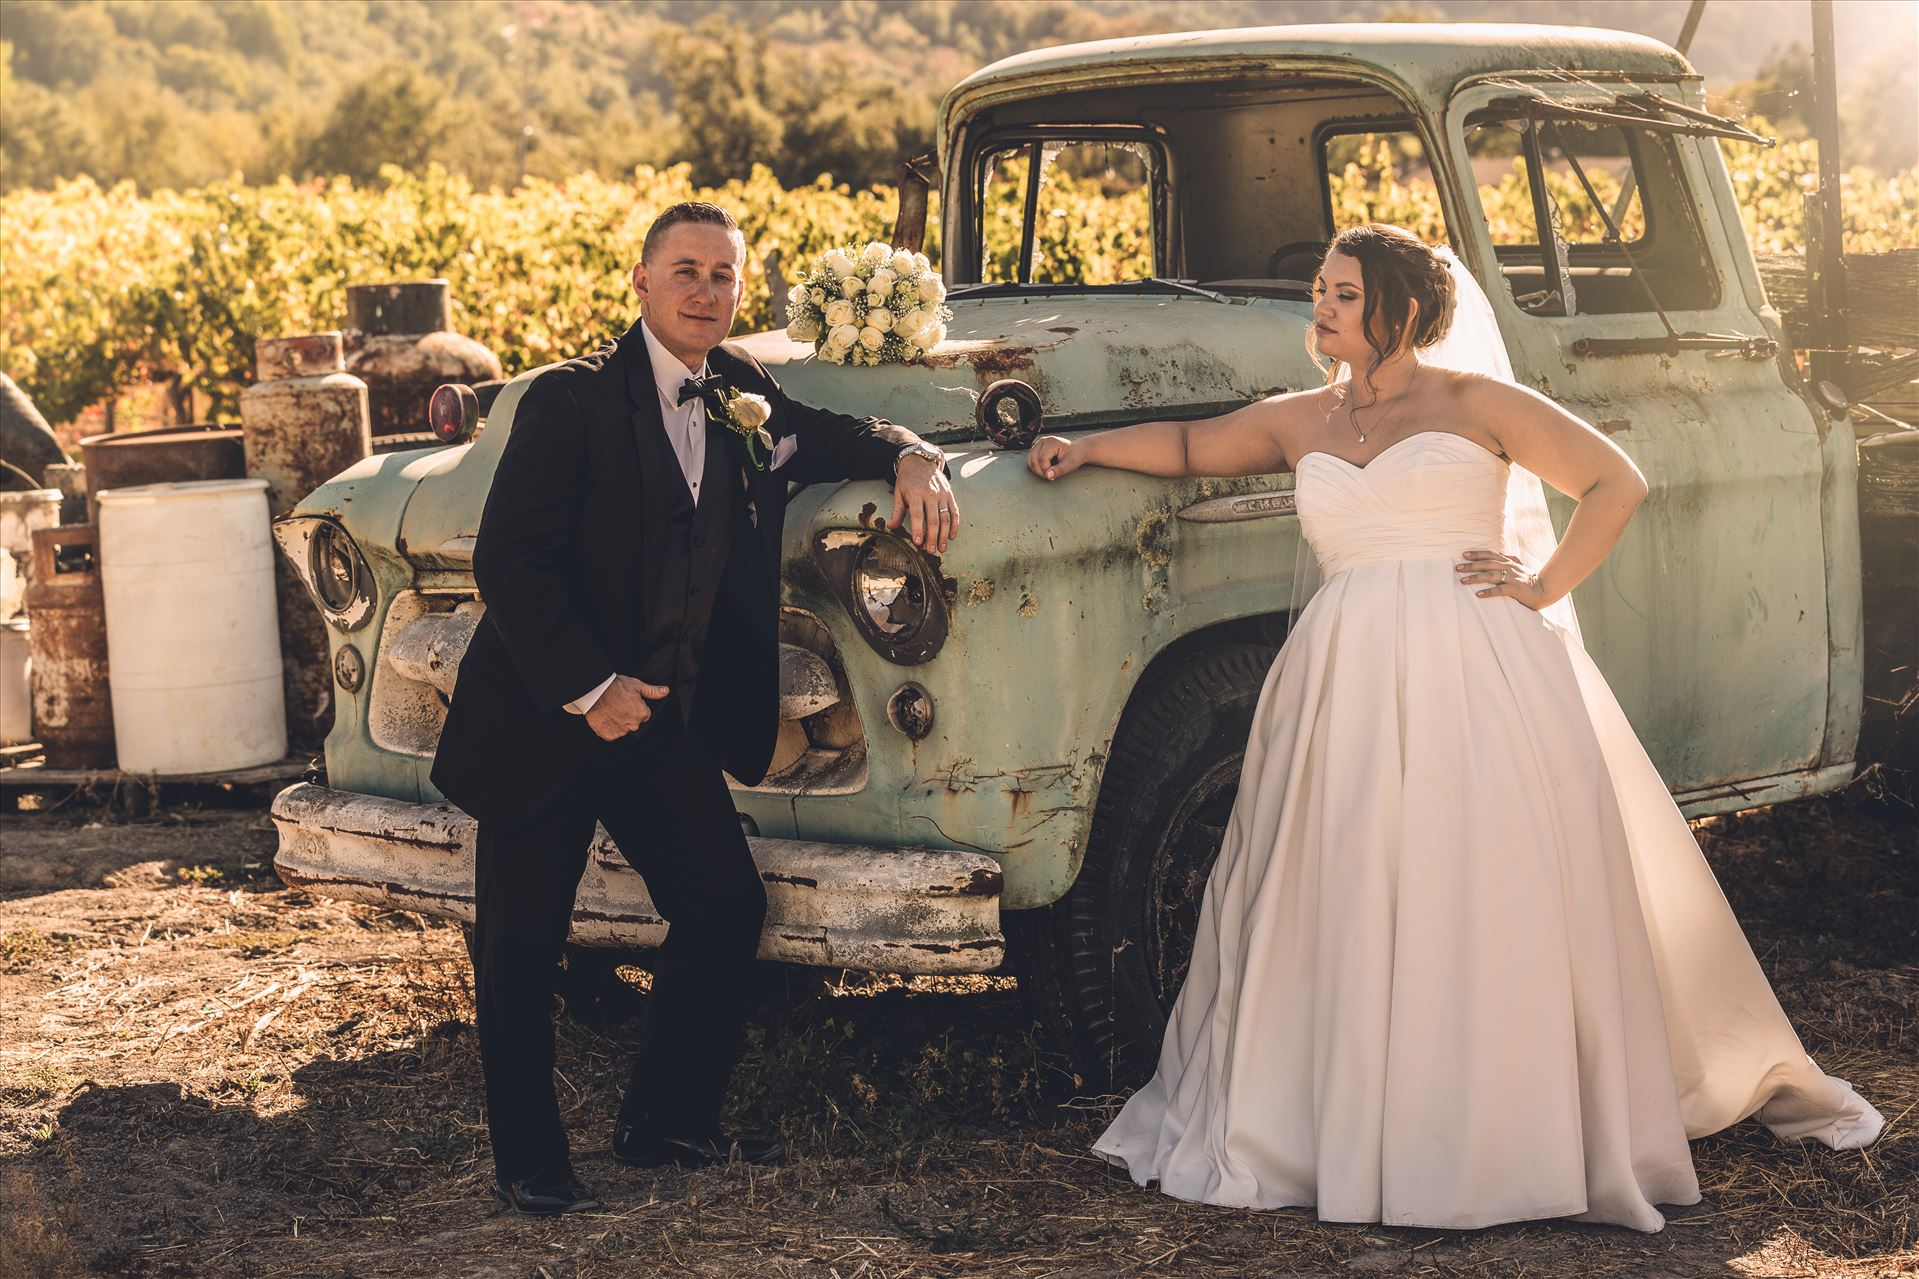 Tyler and Andrea - Tyler and Andrea had their ceremony at the Fortino Winery, in  Gilroy California, the Santa Clara Valley. by Scott Smith Photos